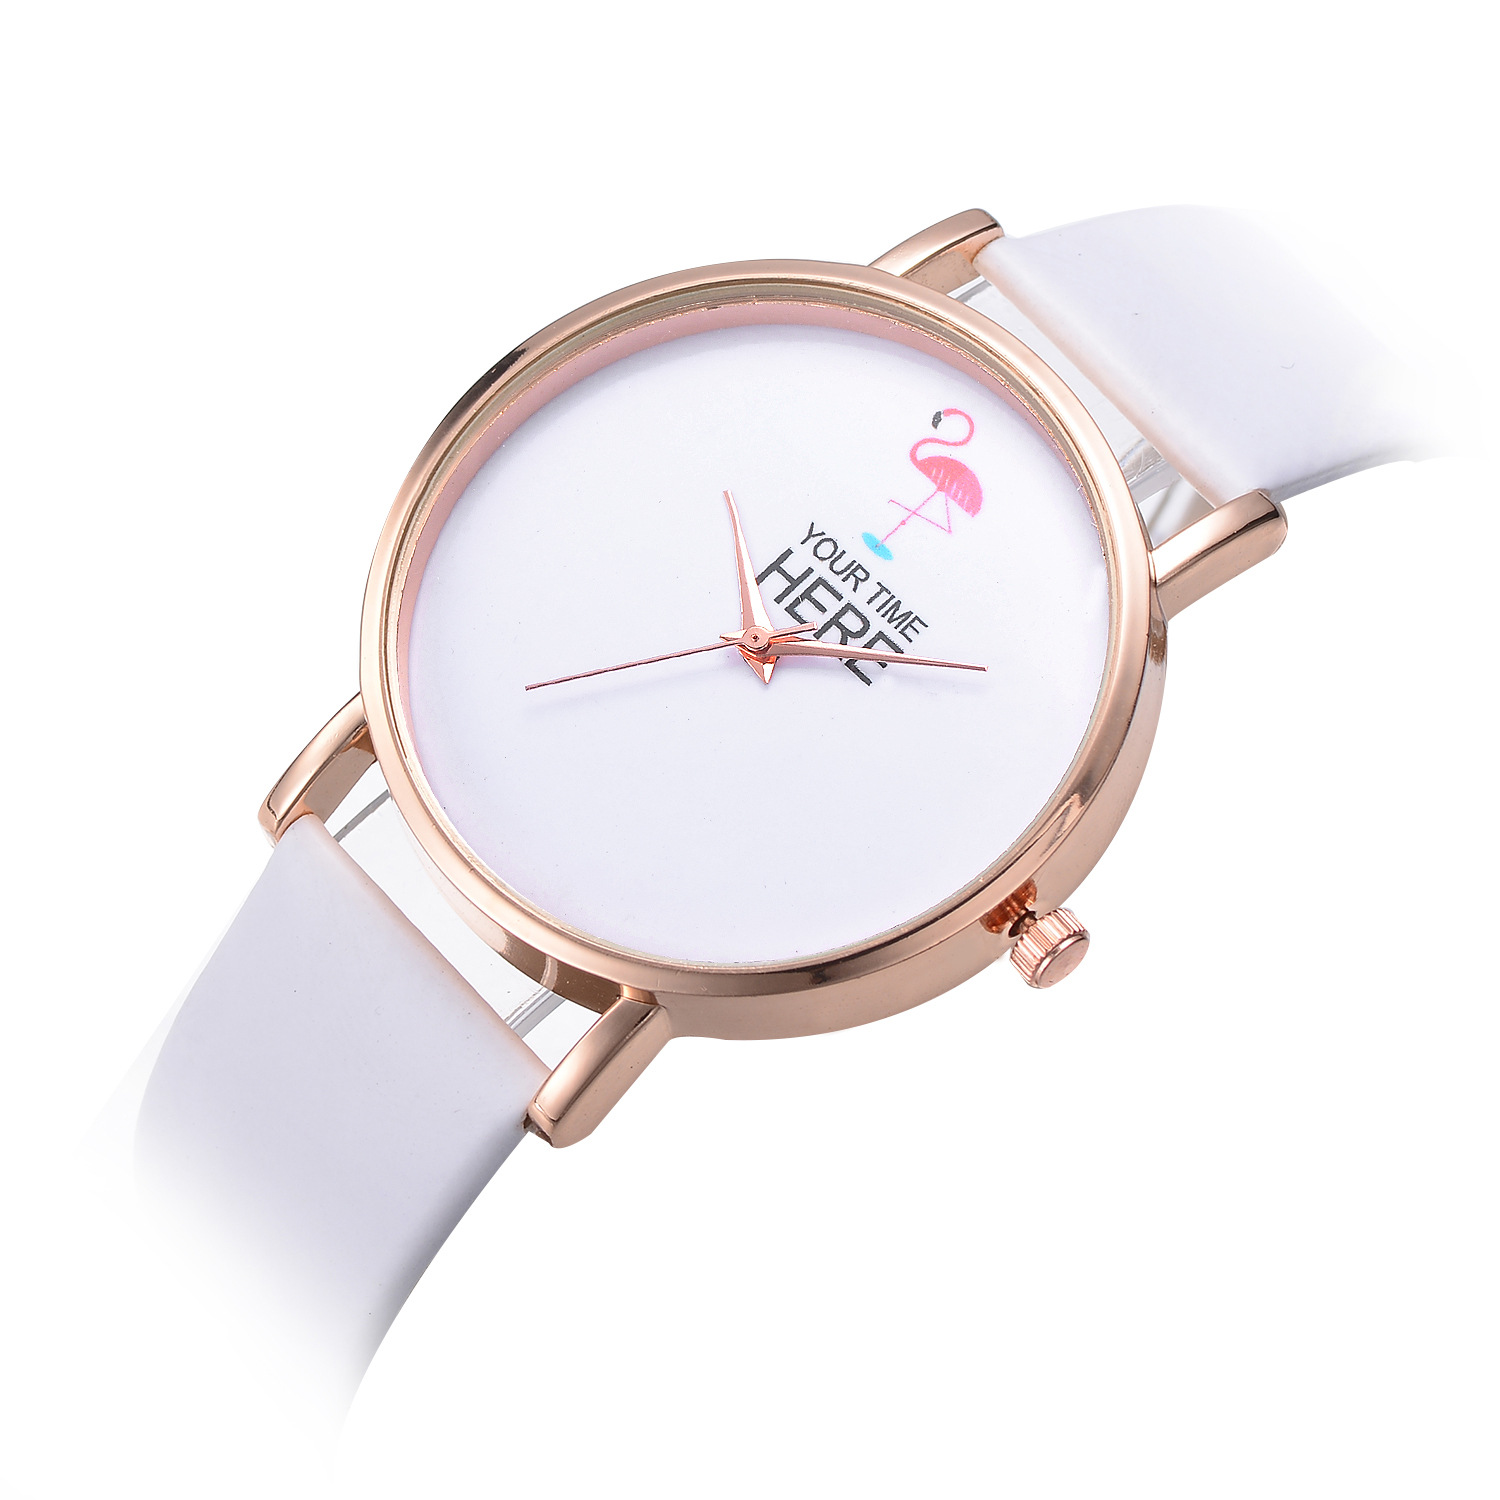 Casual Style Women Wrist Watch Rose Gold Case Leather Strap Quar